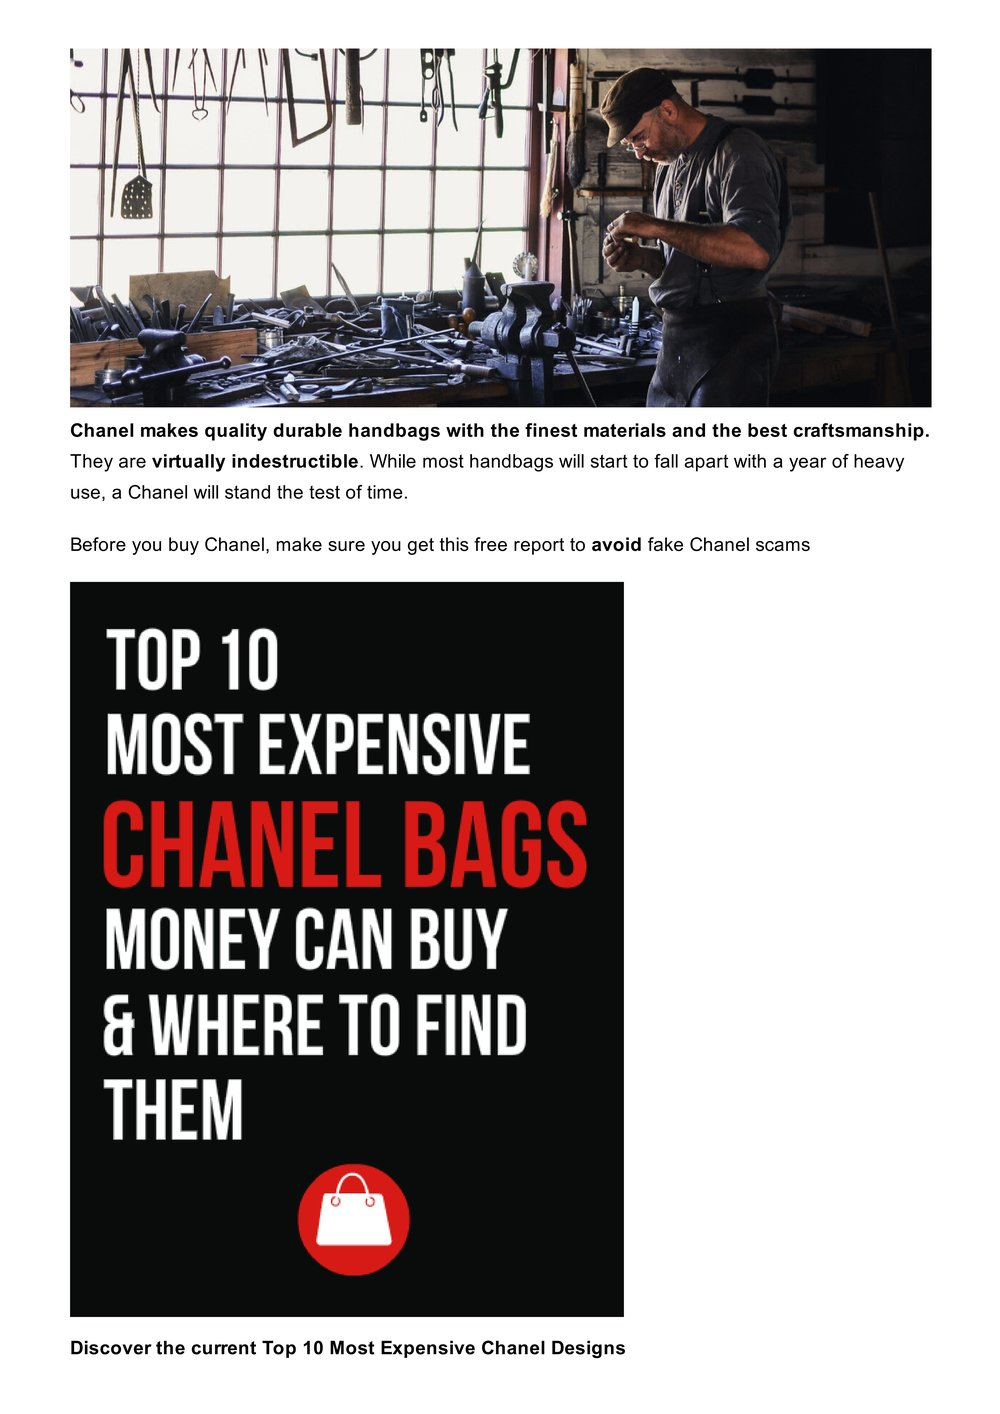 Why You Should Actually Buy An Expensive Chanel Handbag _ Elite Financial Habits2.jpg